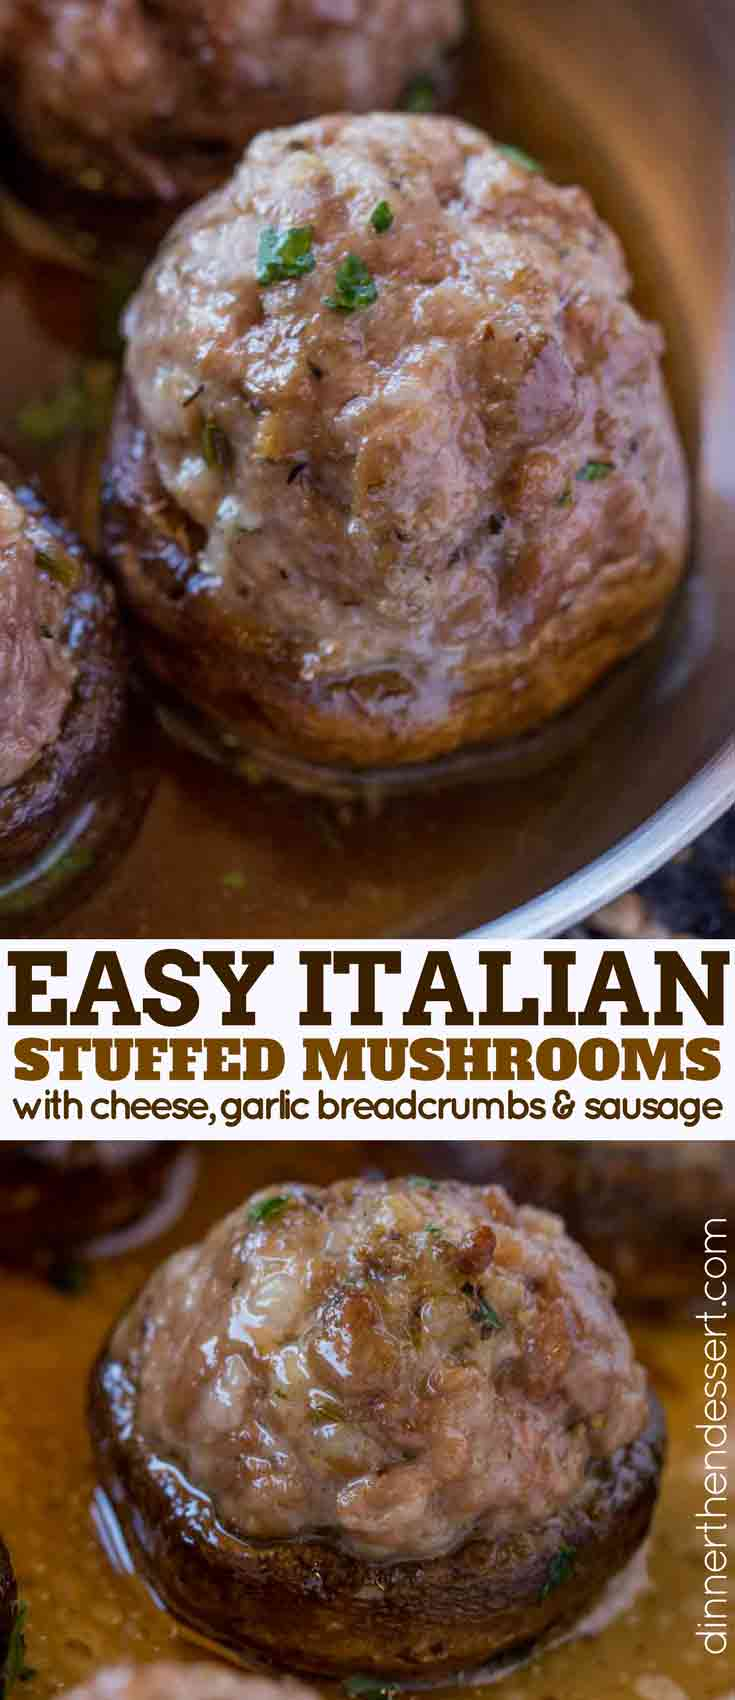 Stuffed Mushrooms with cheese collage